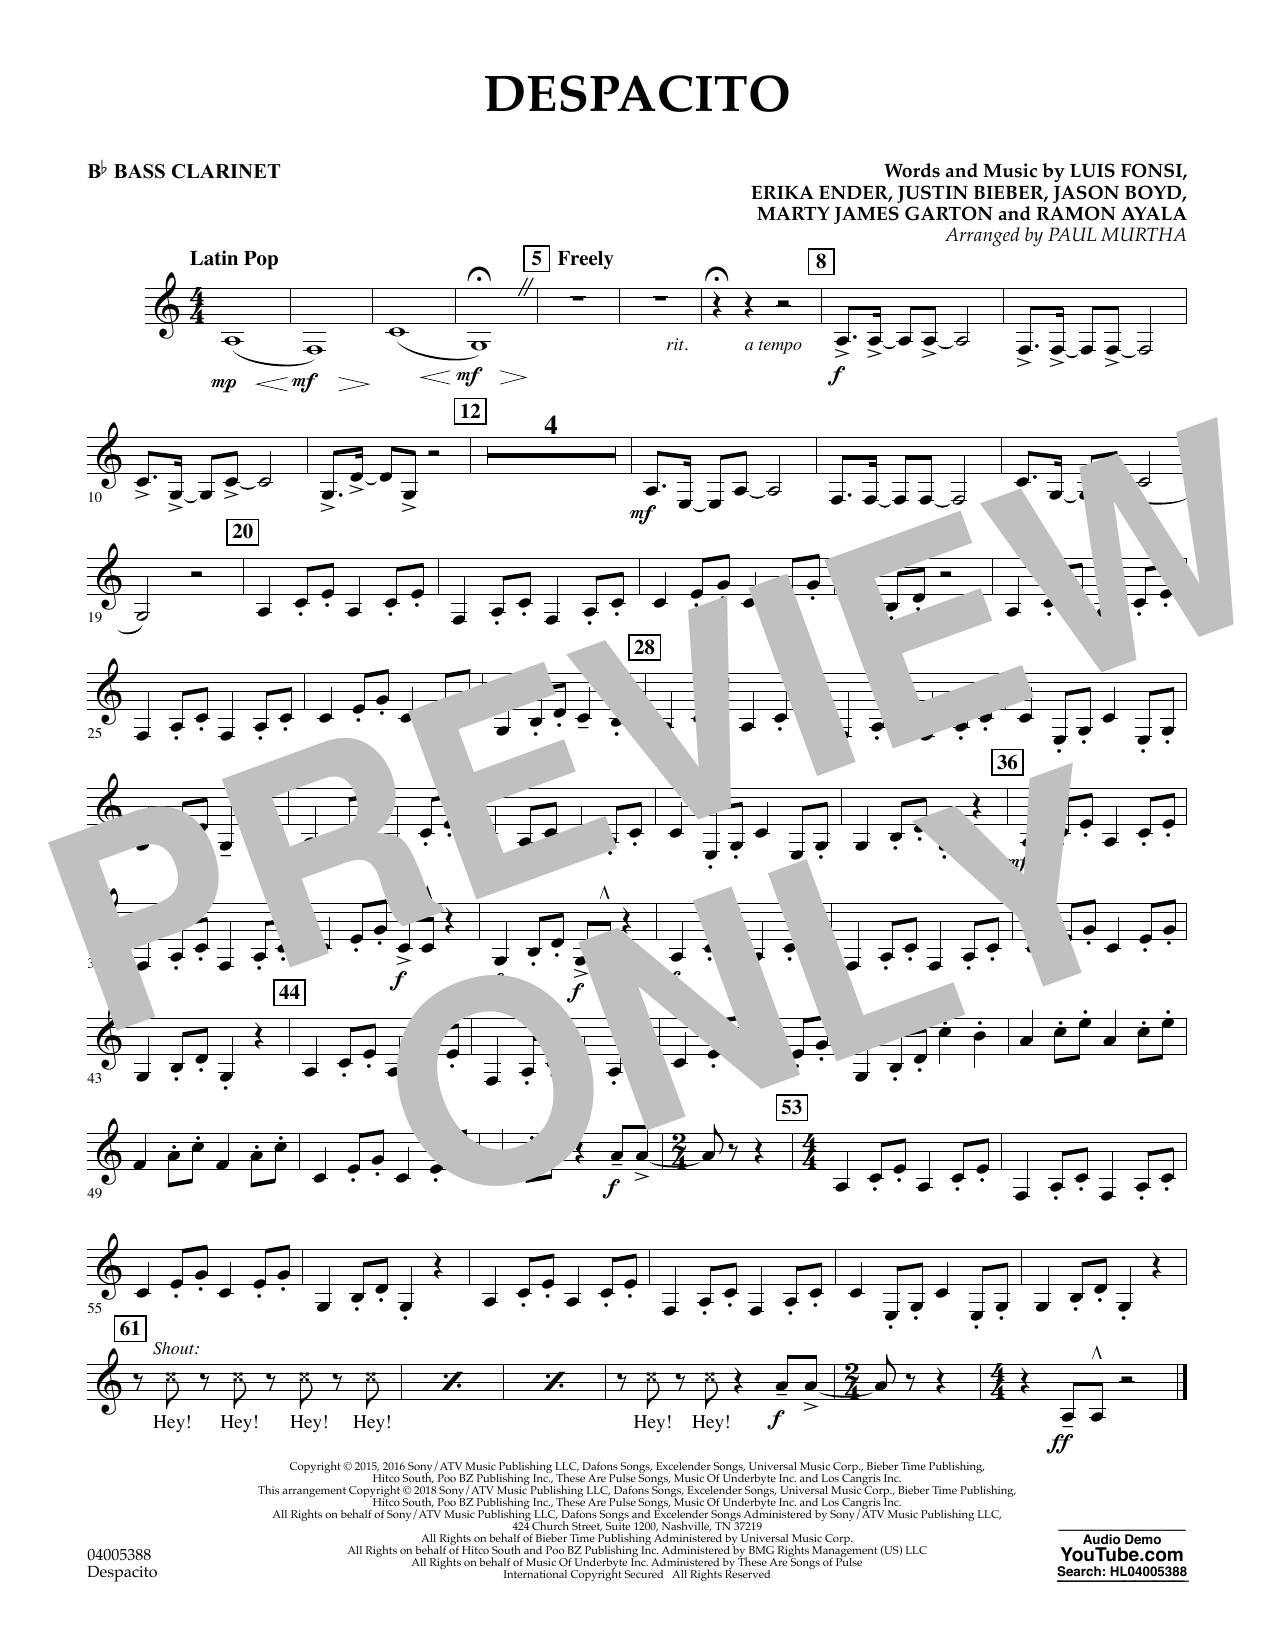 Luis Fonsi Despacito (feat. Daddy Yankee) (arr. Paul Murtha) - Bb Bass Clarinet sheet music notes and chords. Download Printable PDF.